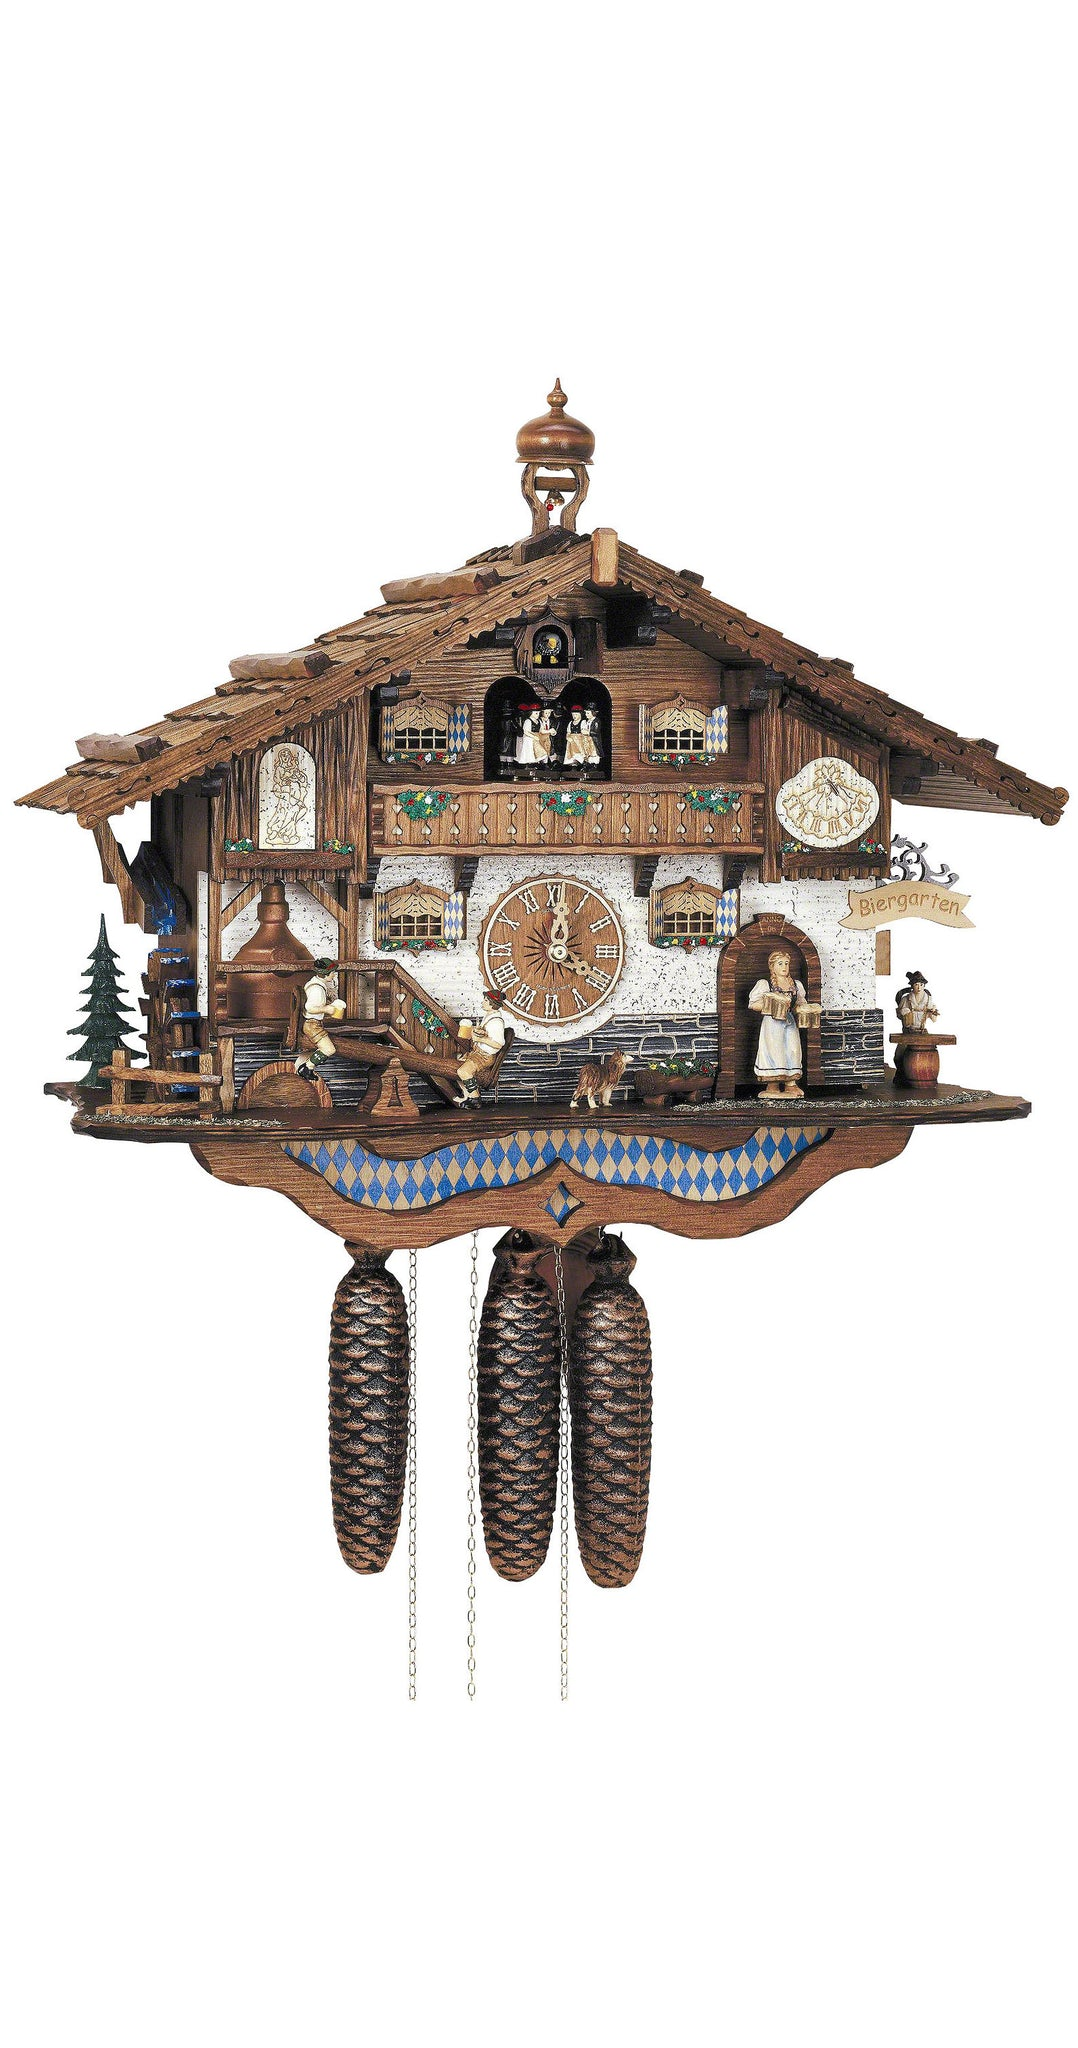 Cuckoo Clock Bavarian House with Beer Drinkers 8-Day Movement Music - Cuckoo Clock Meister